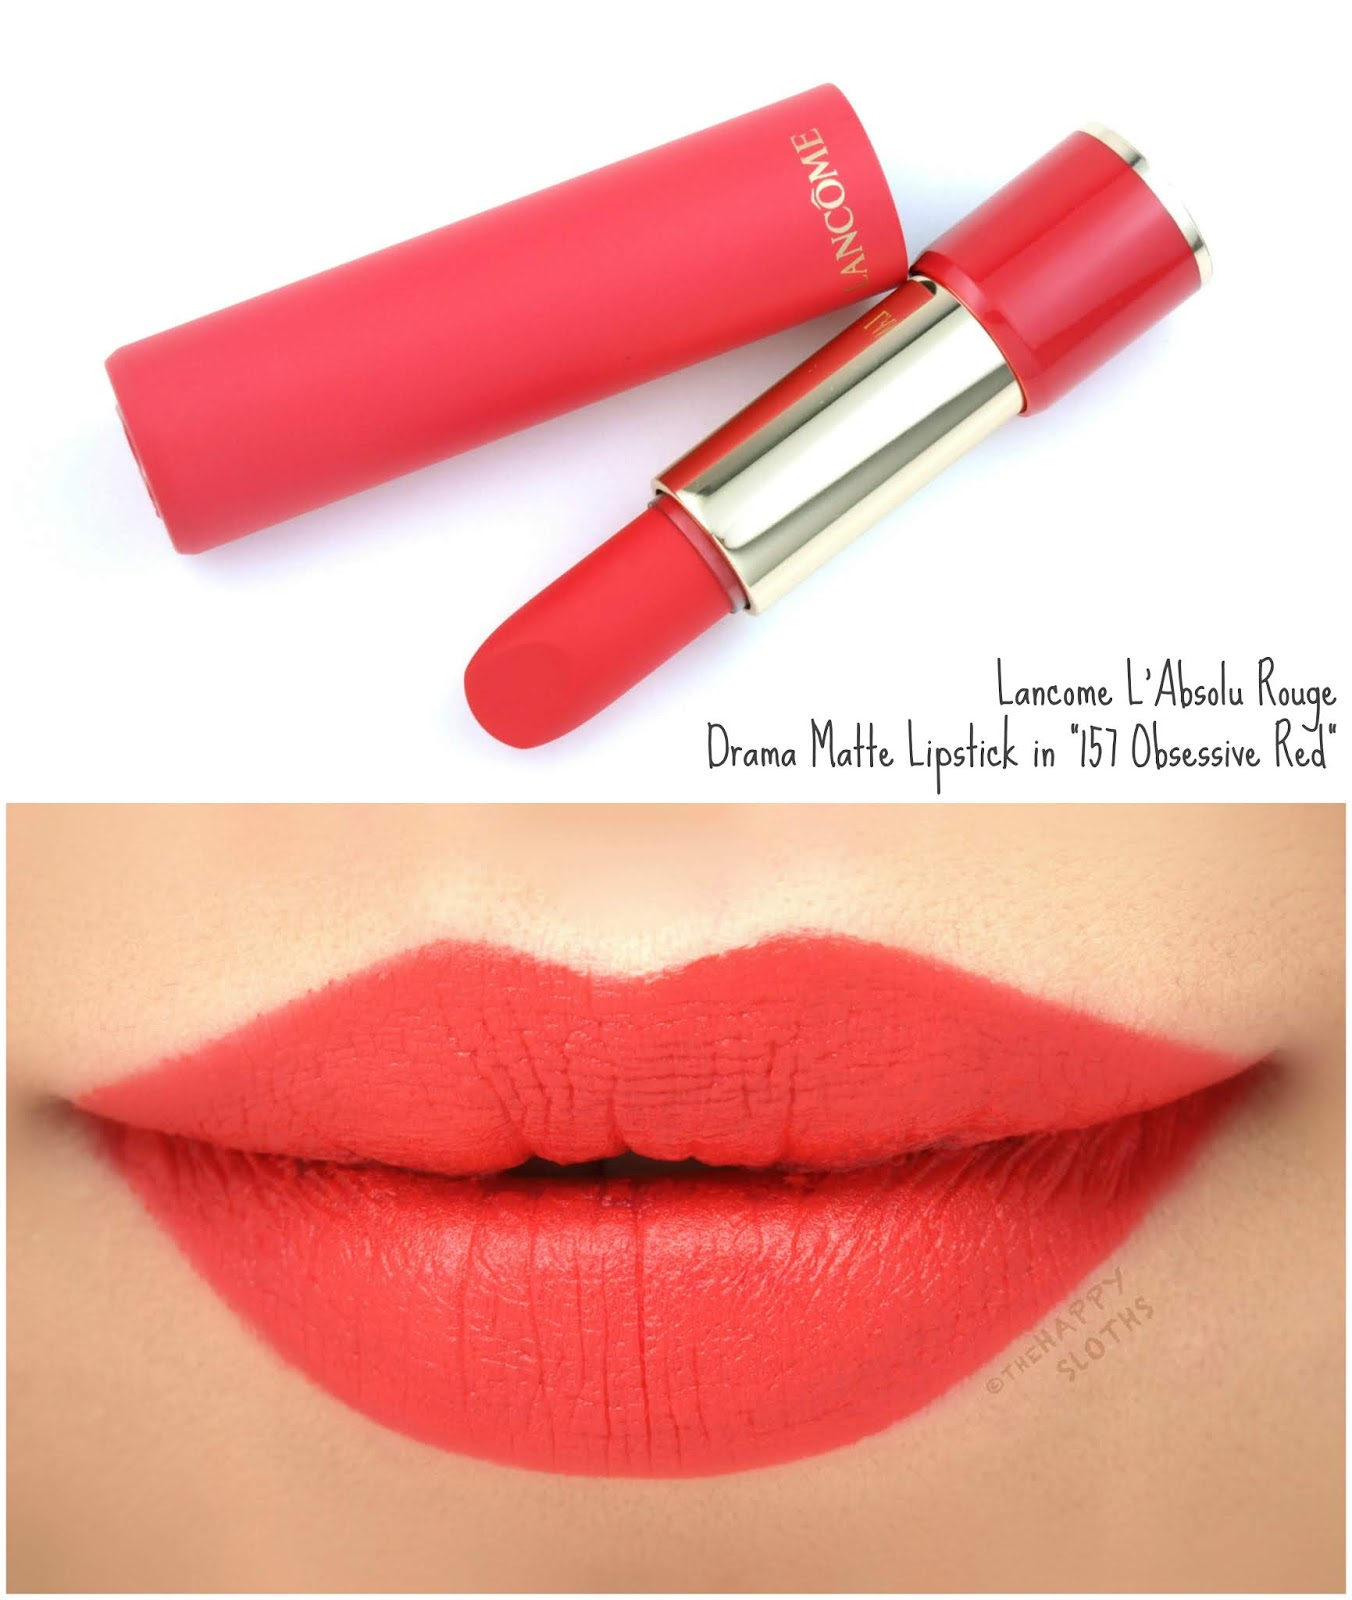 "Lancome | L'Absolu Rouge Drama Matte Lipstick in ""157 Obsessive Red"": Review and Swatches"